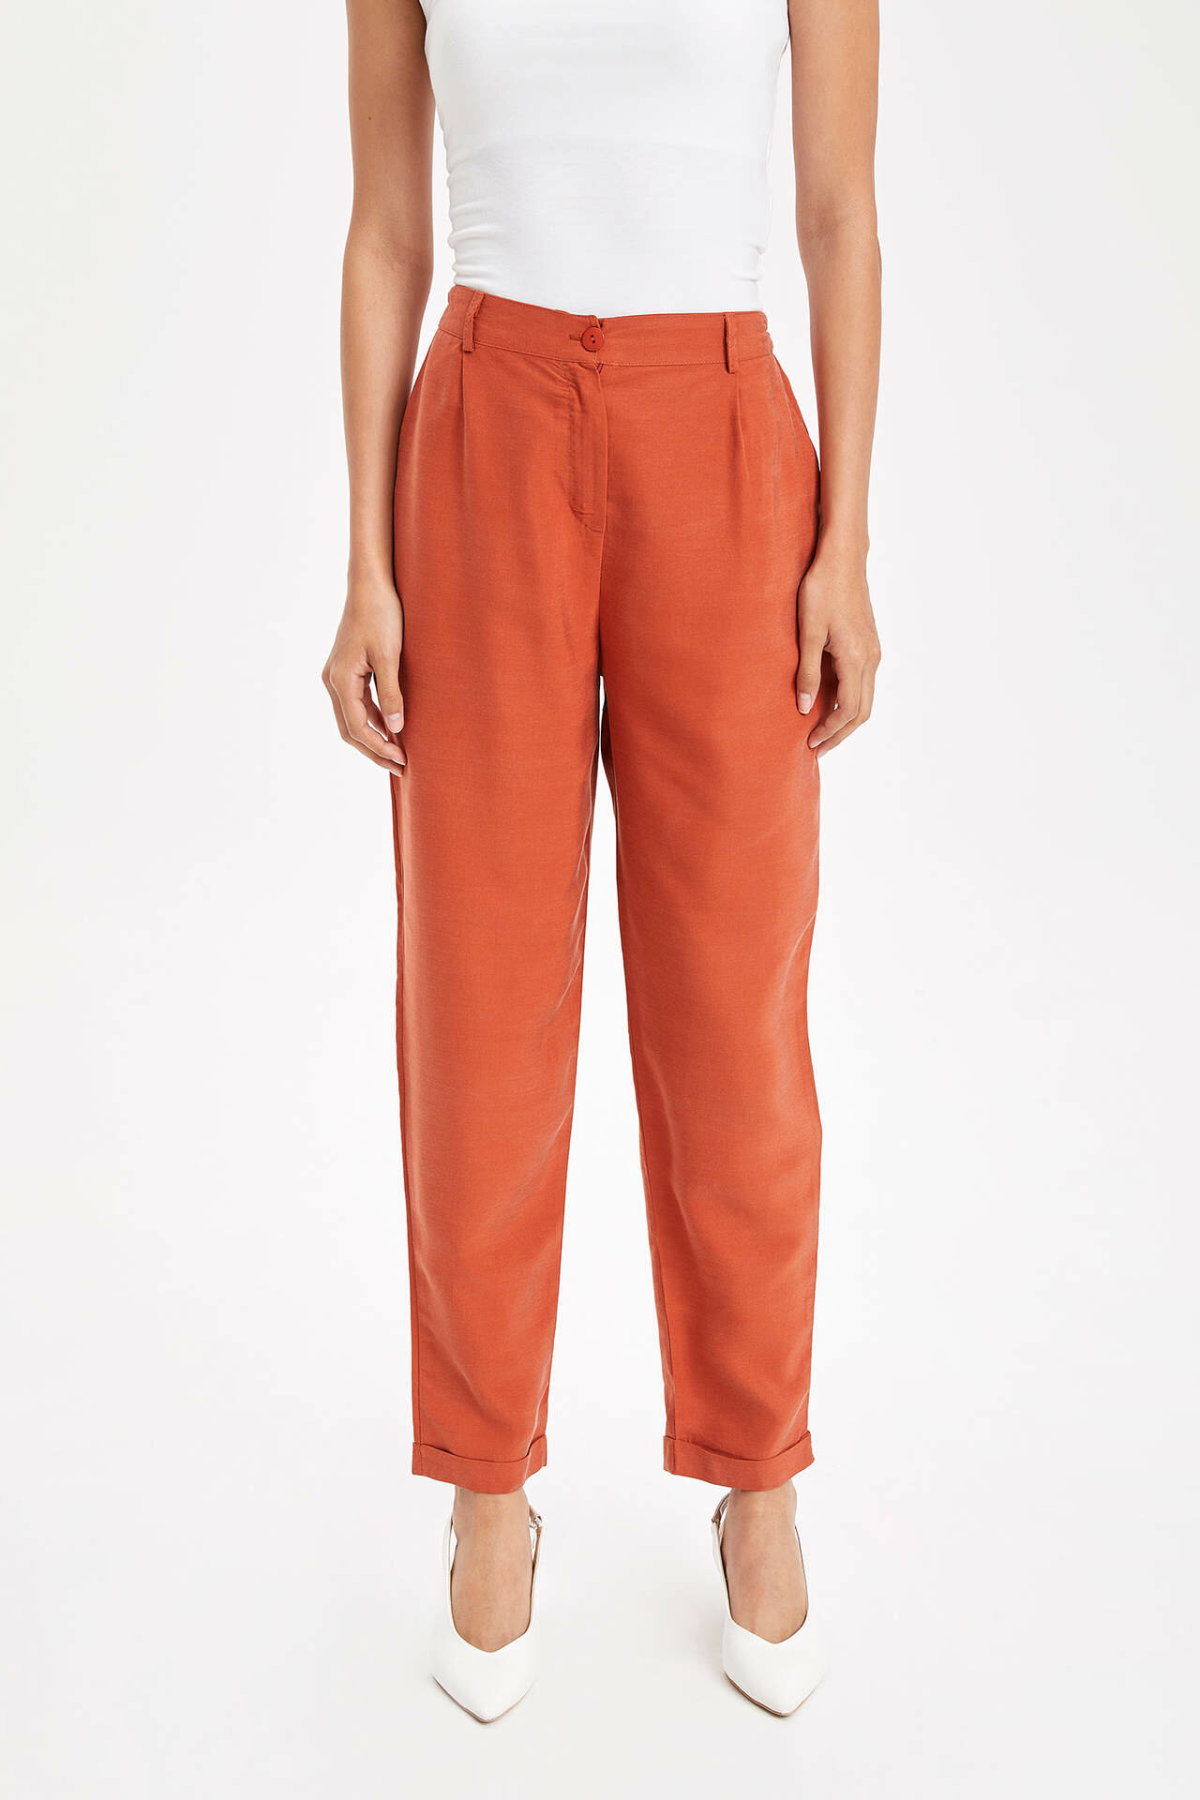 DeFacto Female Fashion Loose Trousers Ladies Casual Button Pants Comfort Straight Comfort Long Pants New Orange - L1406AZ19SP